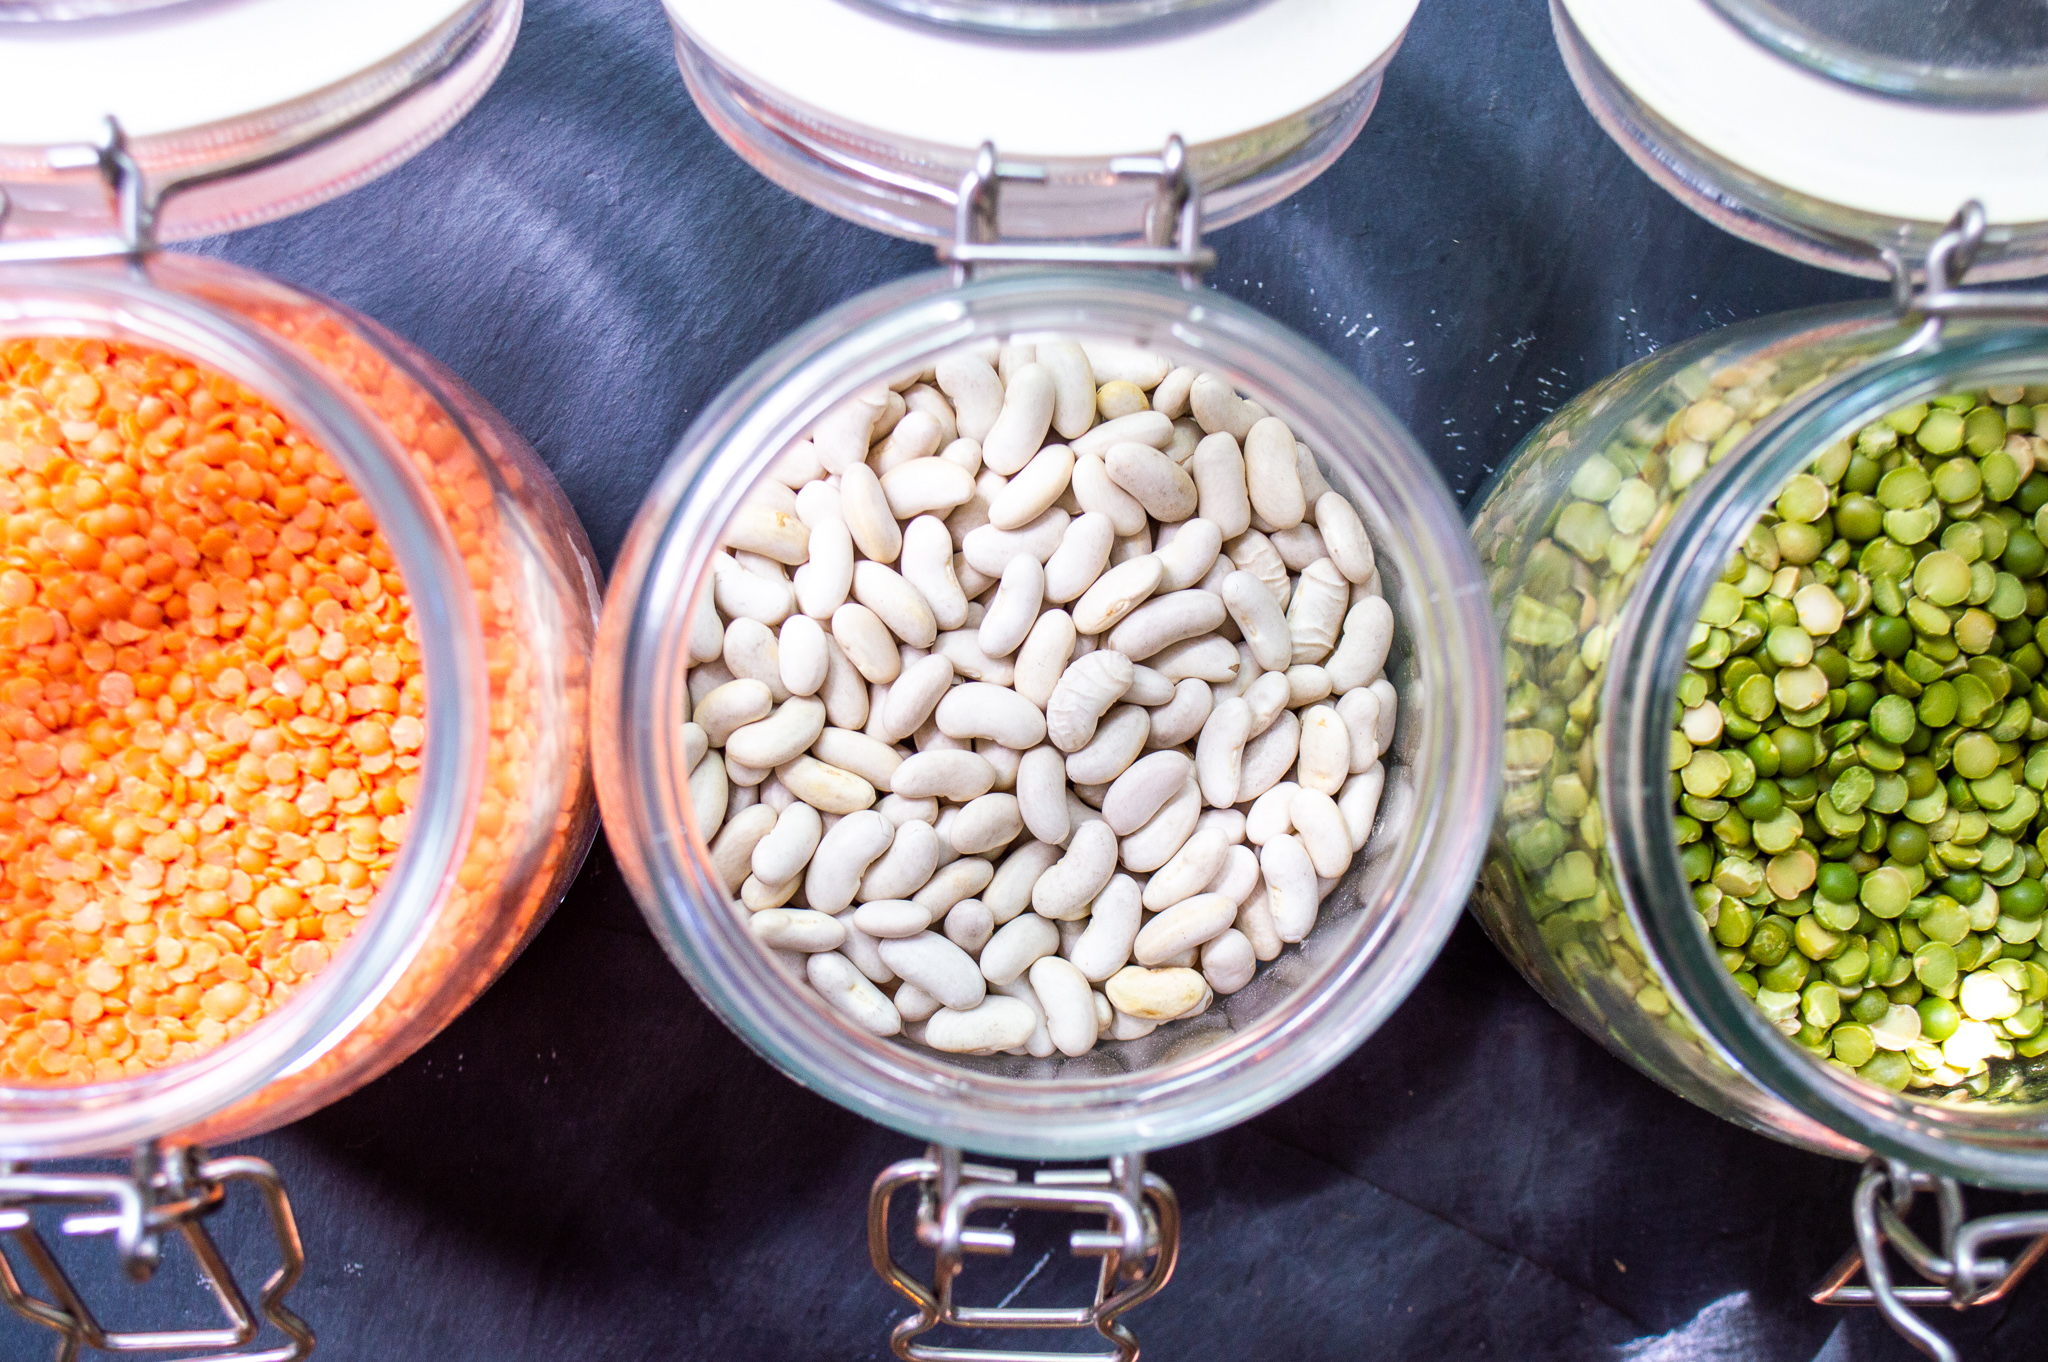 LEgumes - Peas, chickpeas, lentils, all the kinds of beans